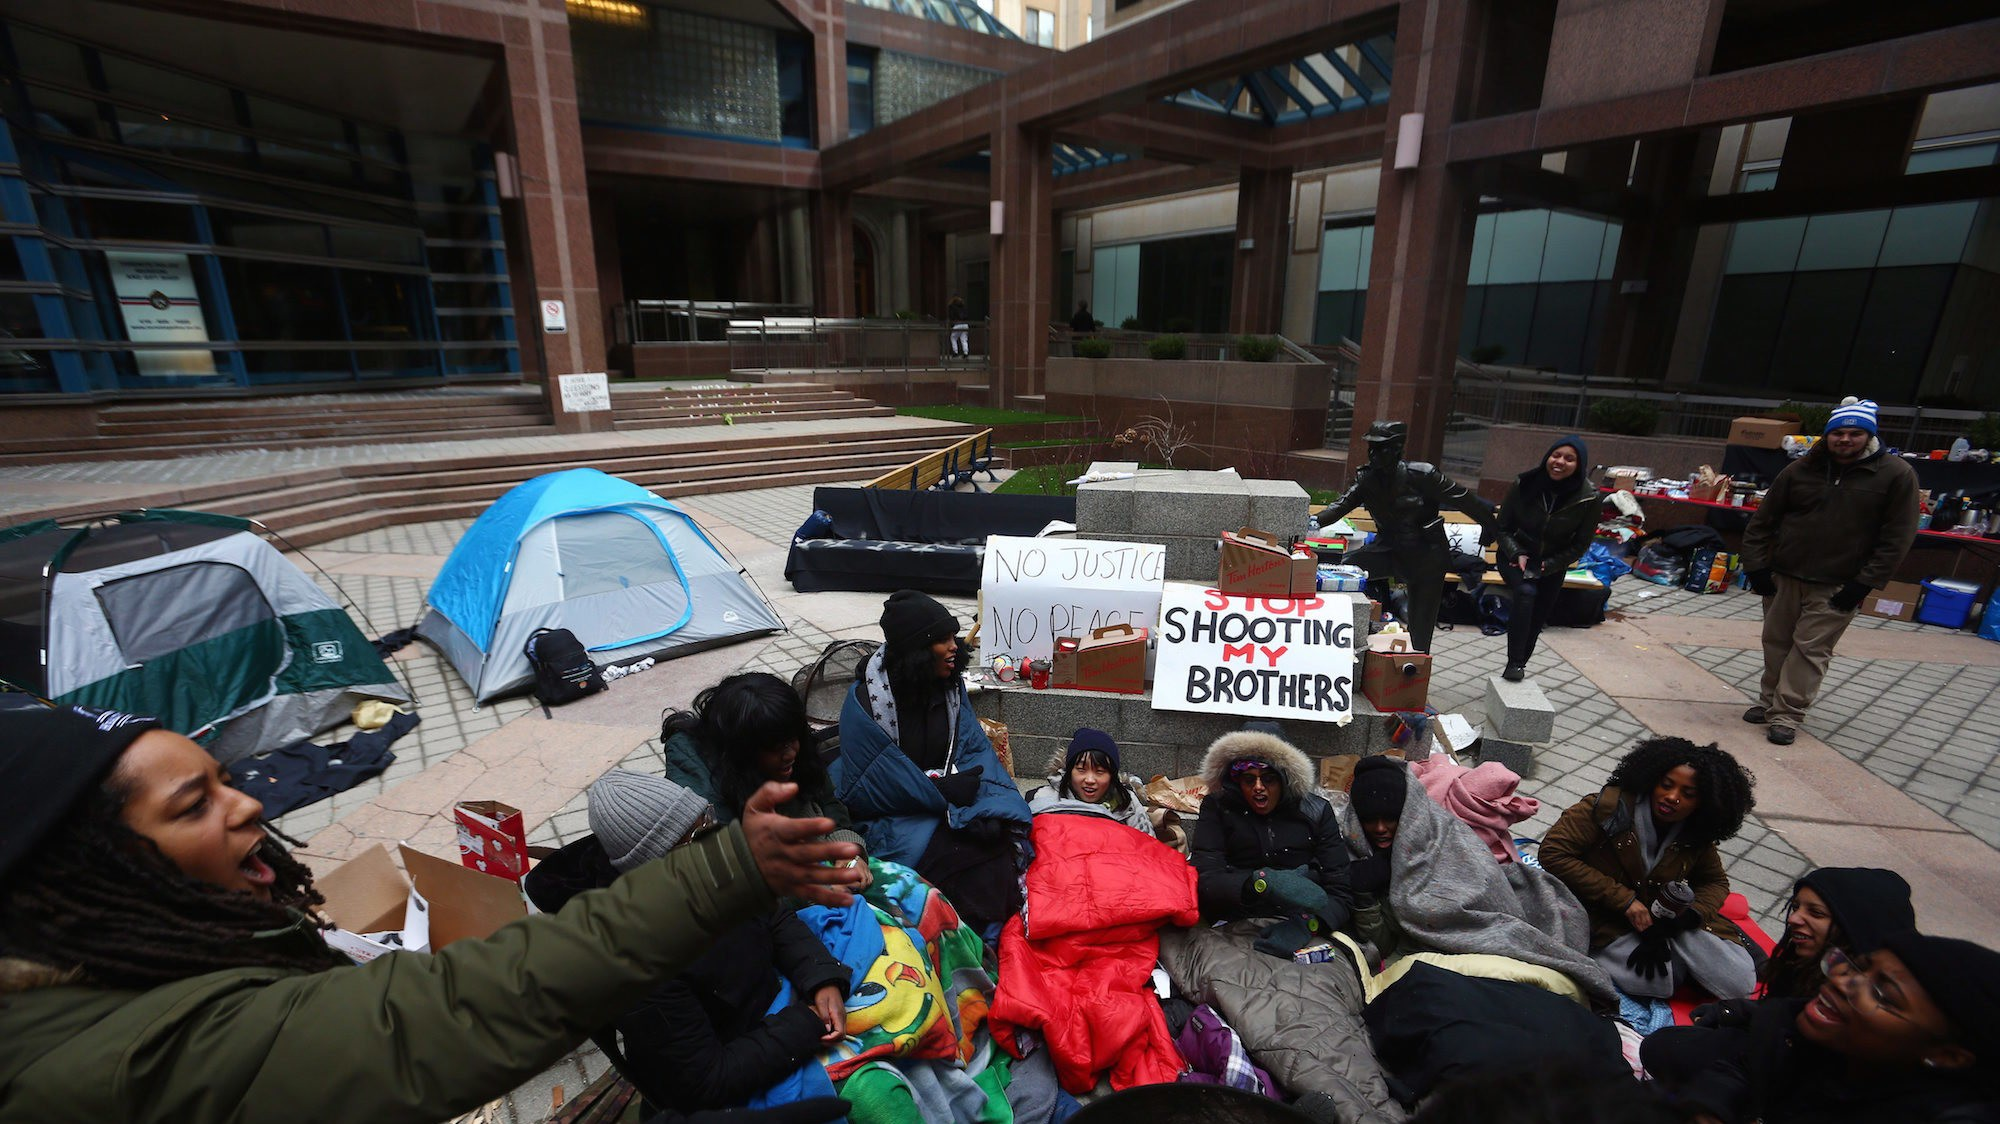 Black Lives Matter Stage Overnight Sit-In Over Decision Not to Charge Cop in Toronto